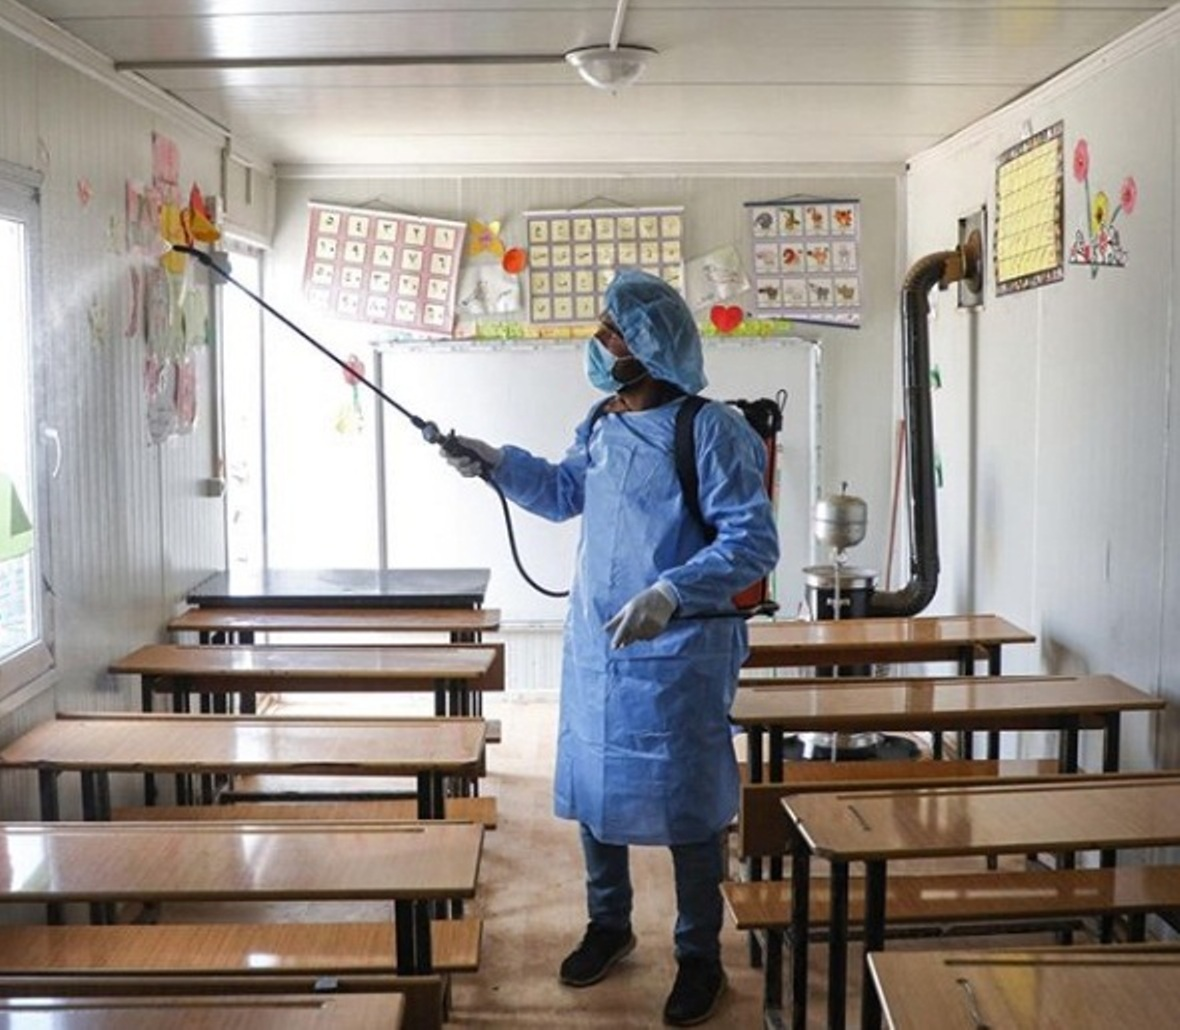 A volunteer disinfecting a make-shift classroom at a camp for displaced people in Idlib, Syria. Photo courtesy: Instagram/unicef